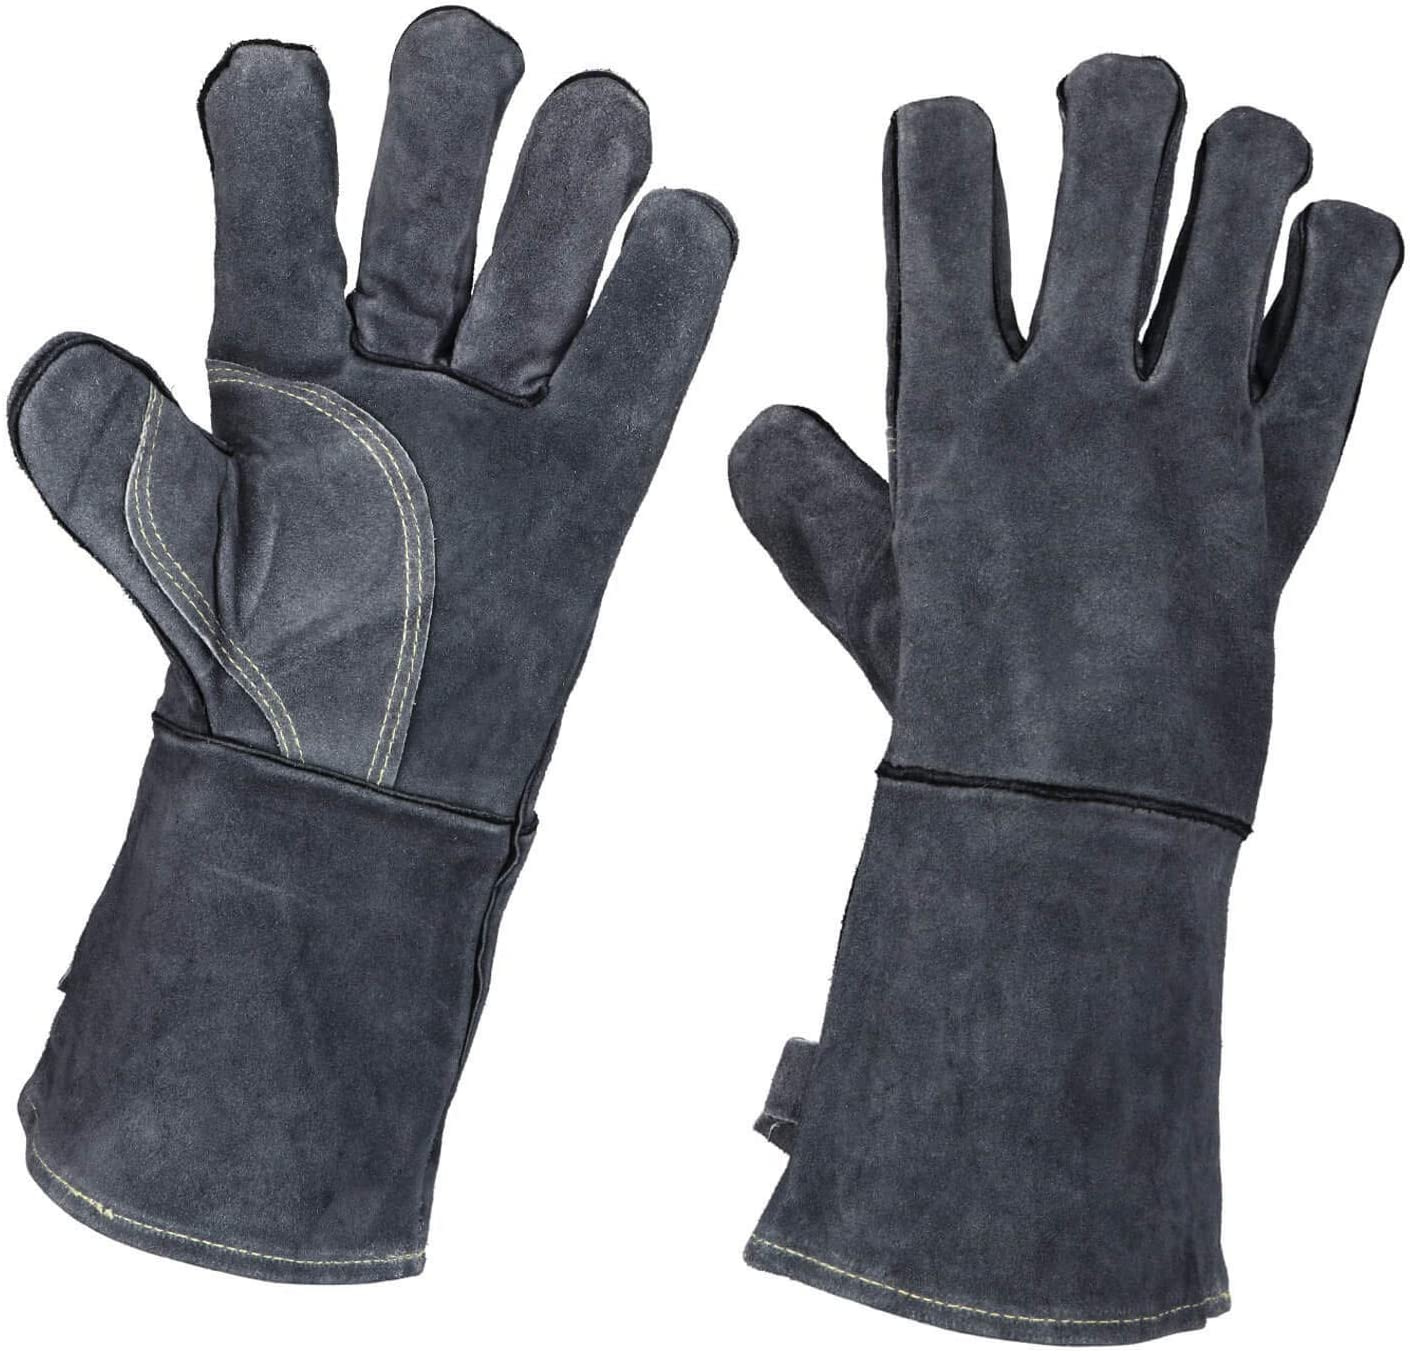 OZERO 932°F Heat Resistant Forge Welding Gloves Leather Grill BBQ Glove with Flame Retardant Long Sleeve for Men and Women Gray 14-inch